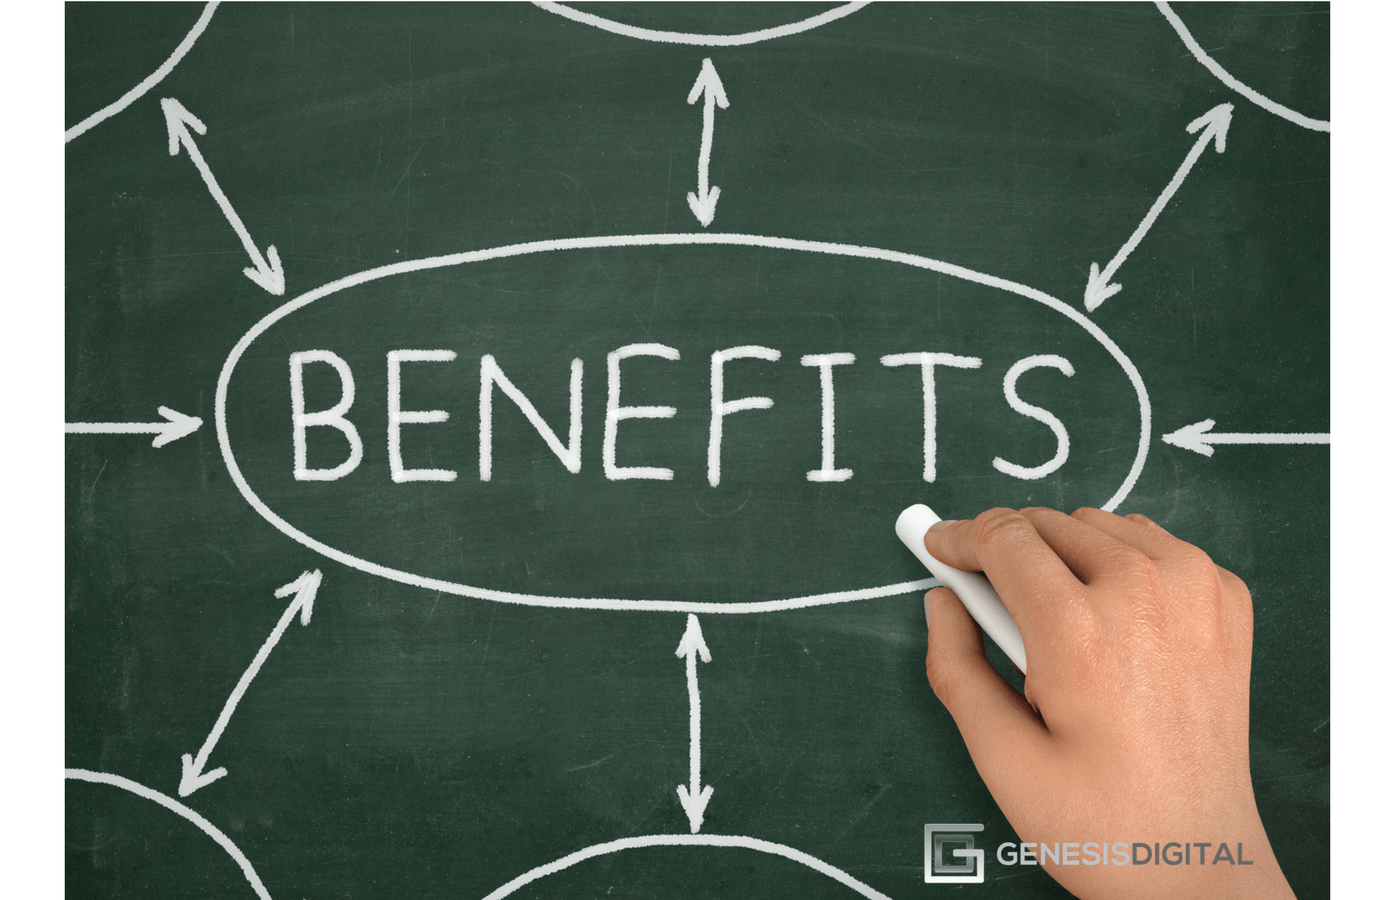 Your VSL should illustrate the benefit of the benefit your product or service provides.